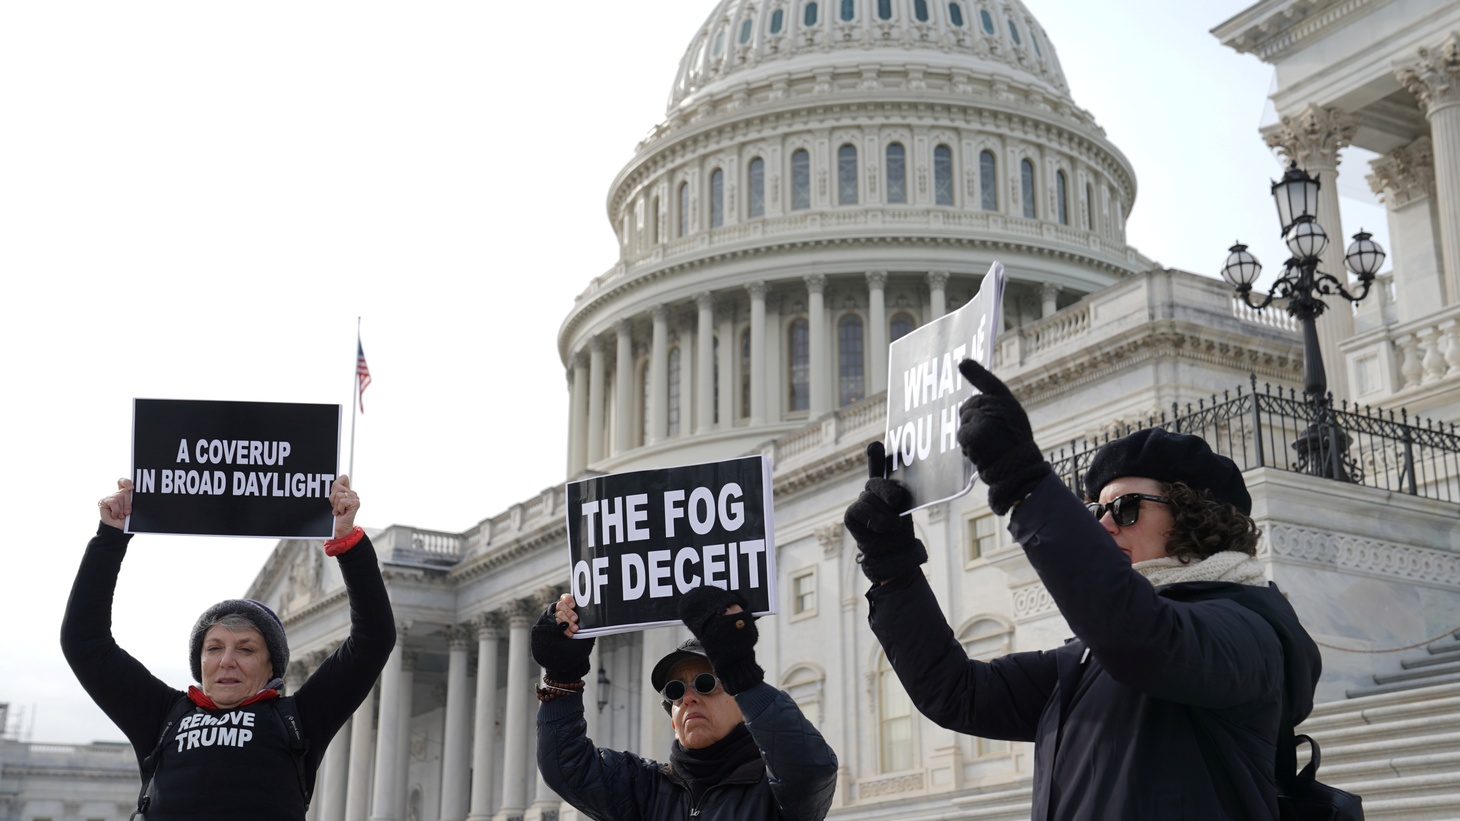 People demonstrate outside of the U.S. Capitol on the third day of the Senate impeachment trial of U.S. President Donald Trump in Washington, U.S., January 23, 2020.